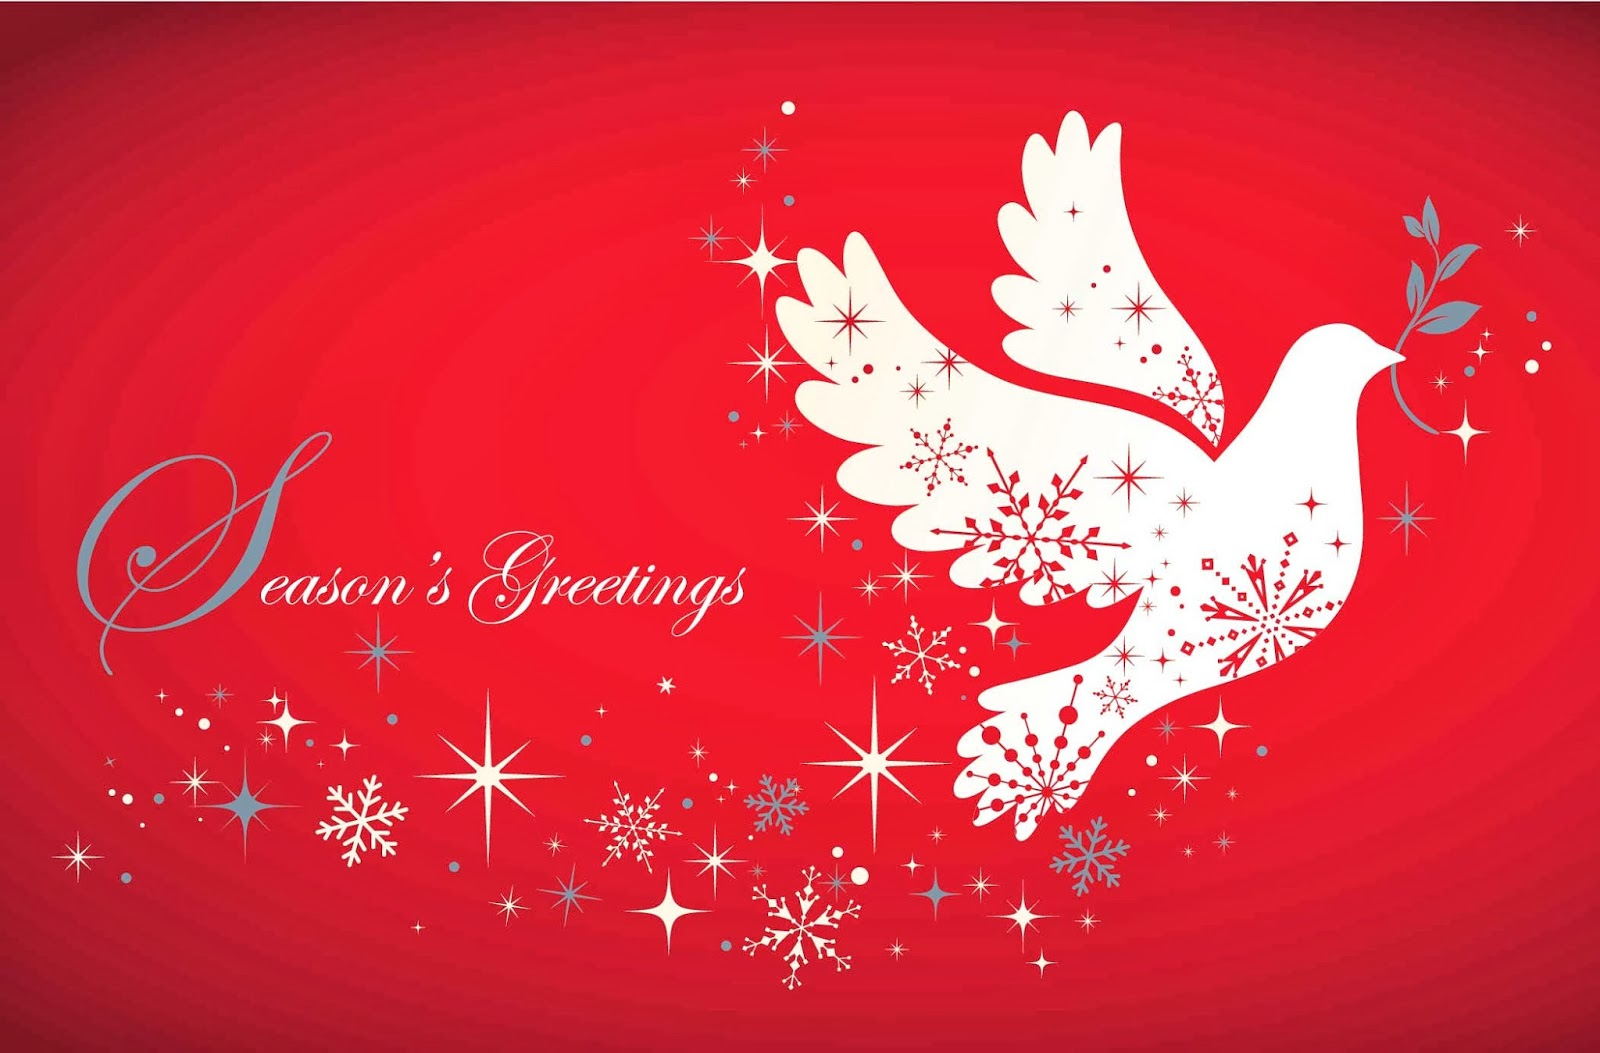 Lima Area Habitat for Humanity wishes you a blessed Christmas!